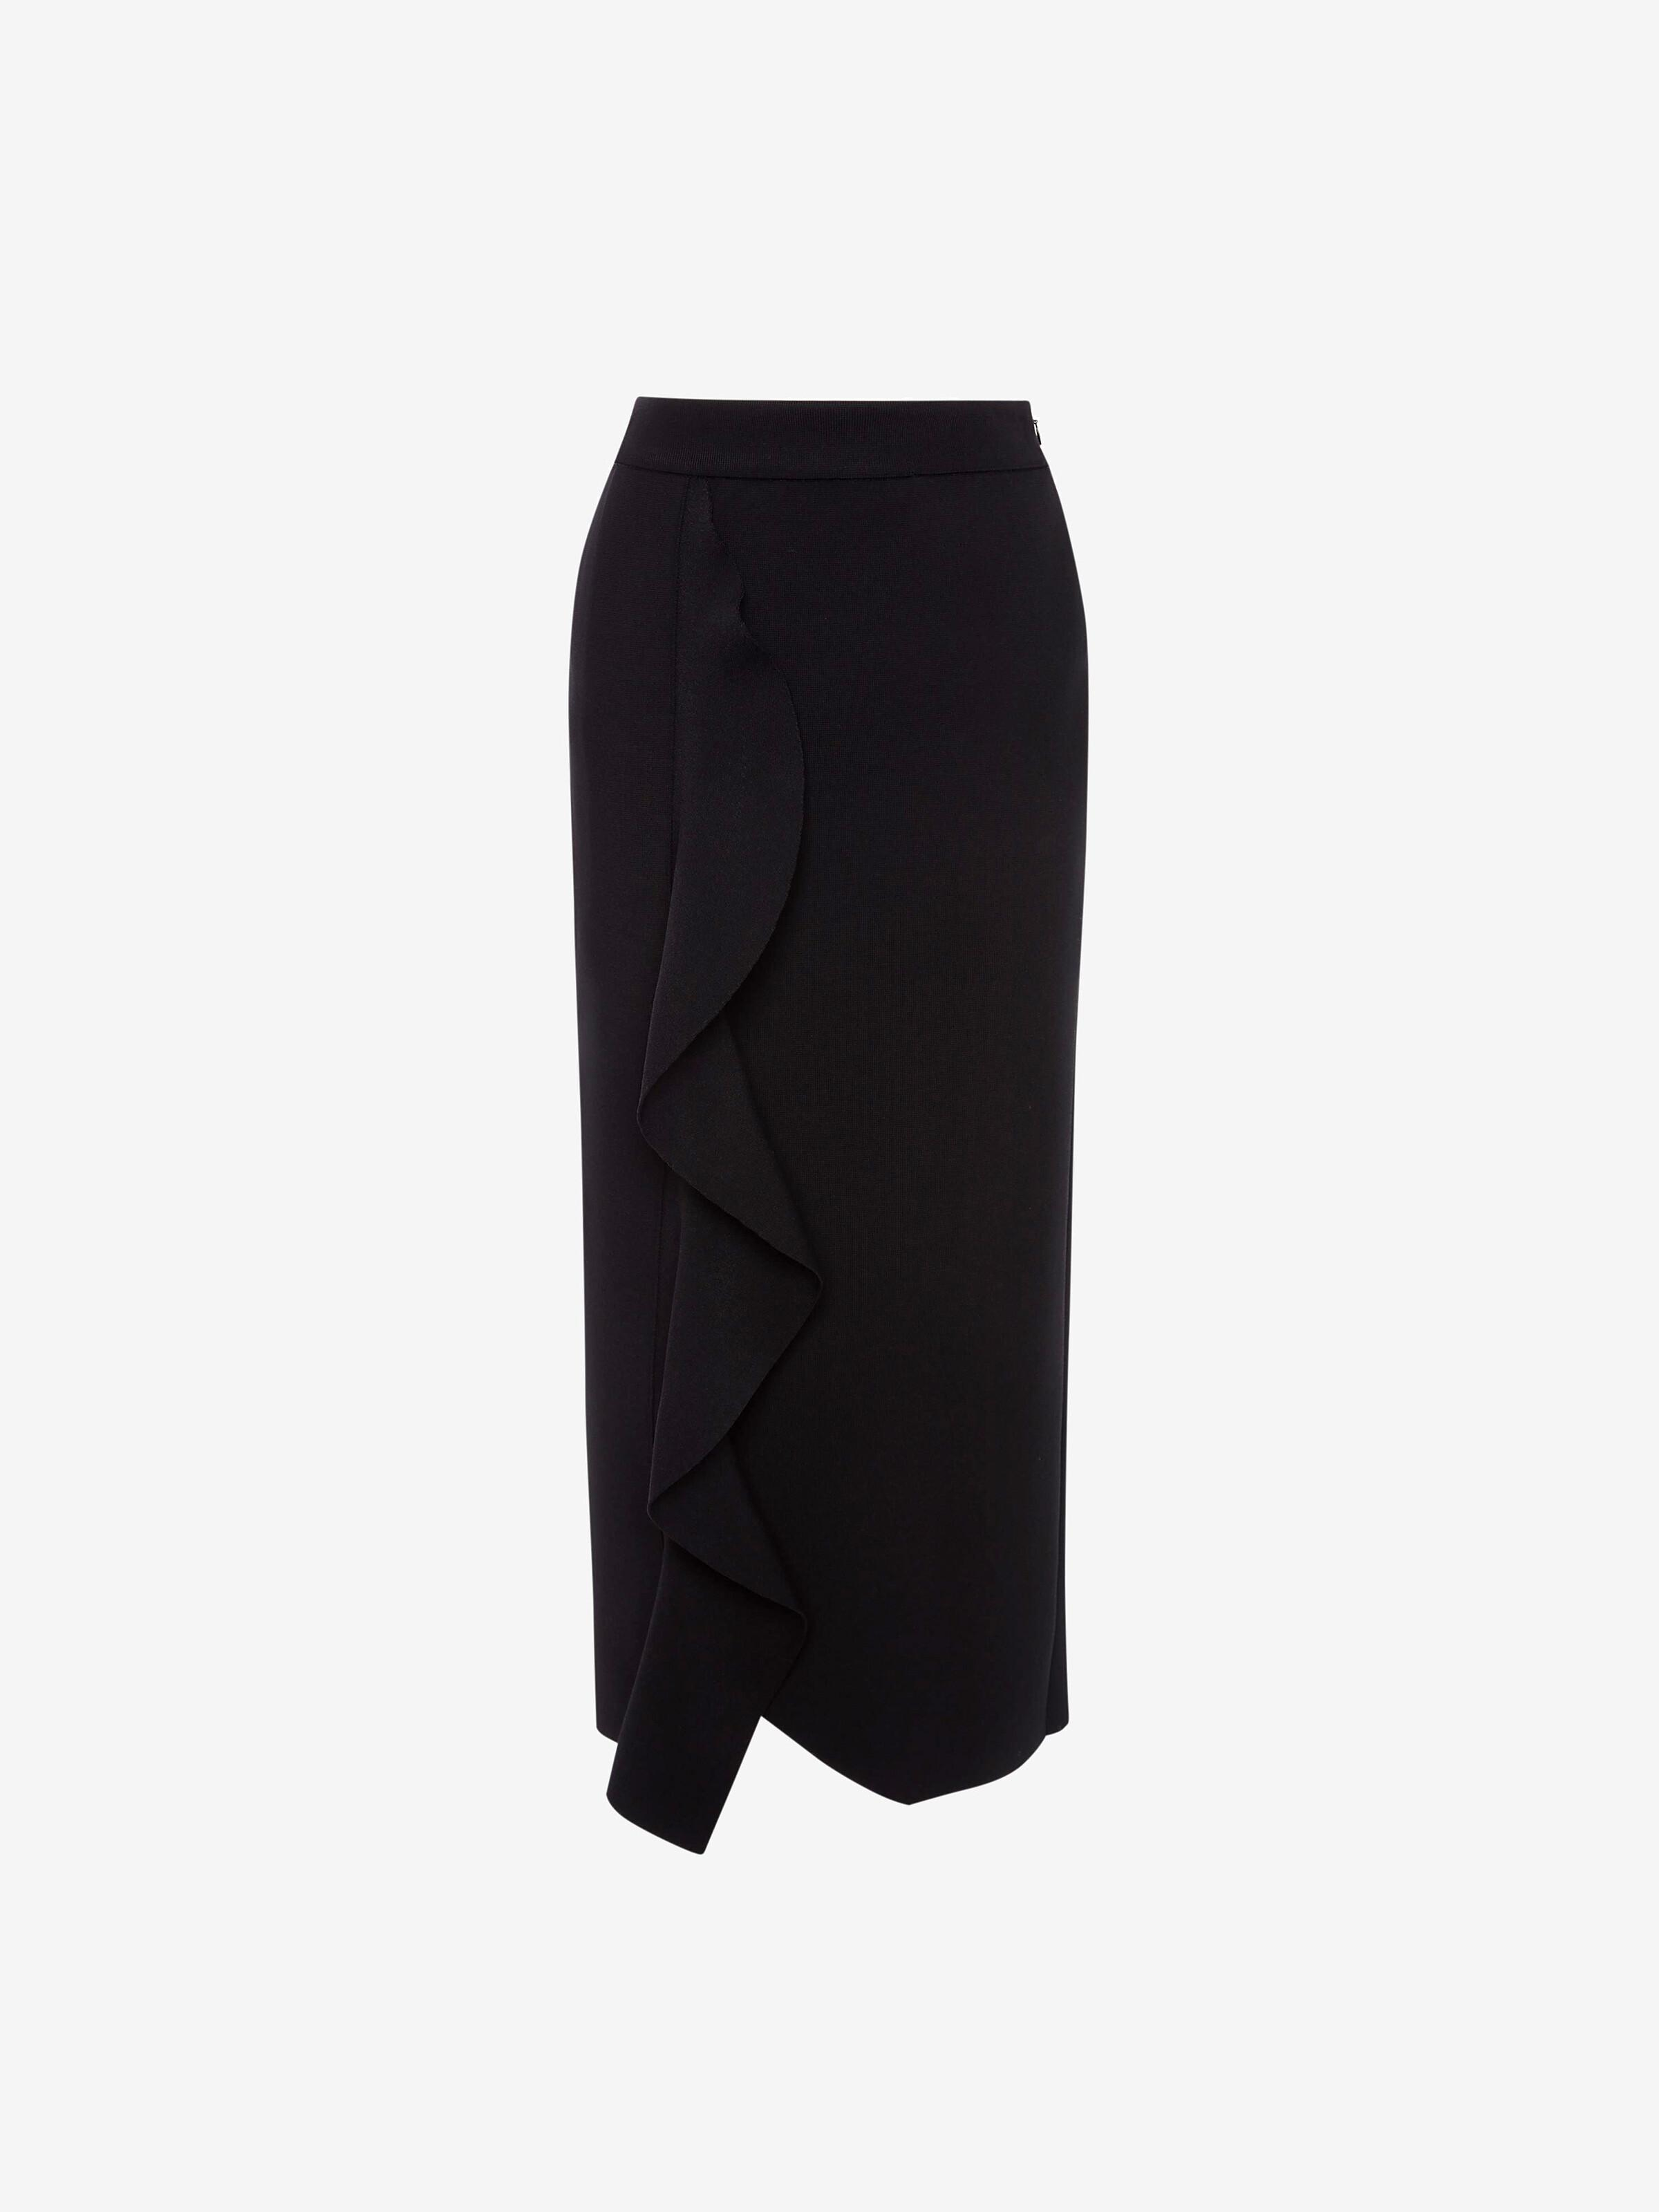 Engineered Sculpted Knit Pencil Skirt 3